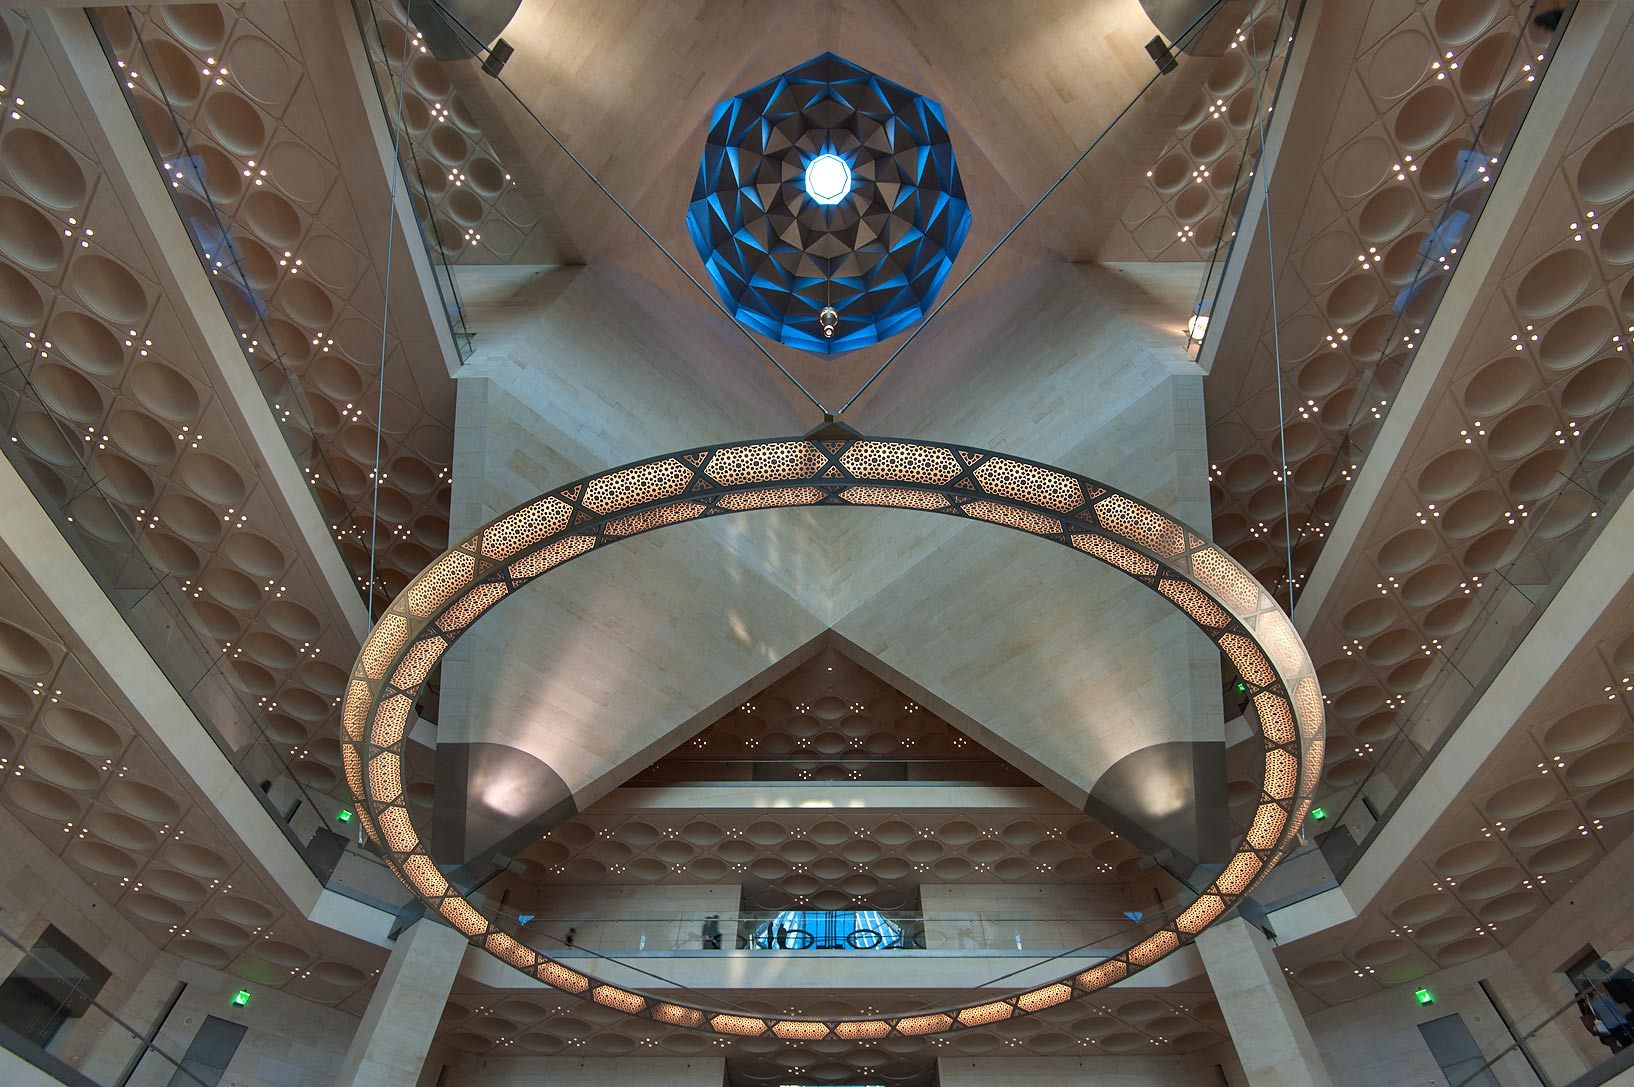 Perforated chandelier and oculus of Museum of Islamic Art. Doha, Qatar